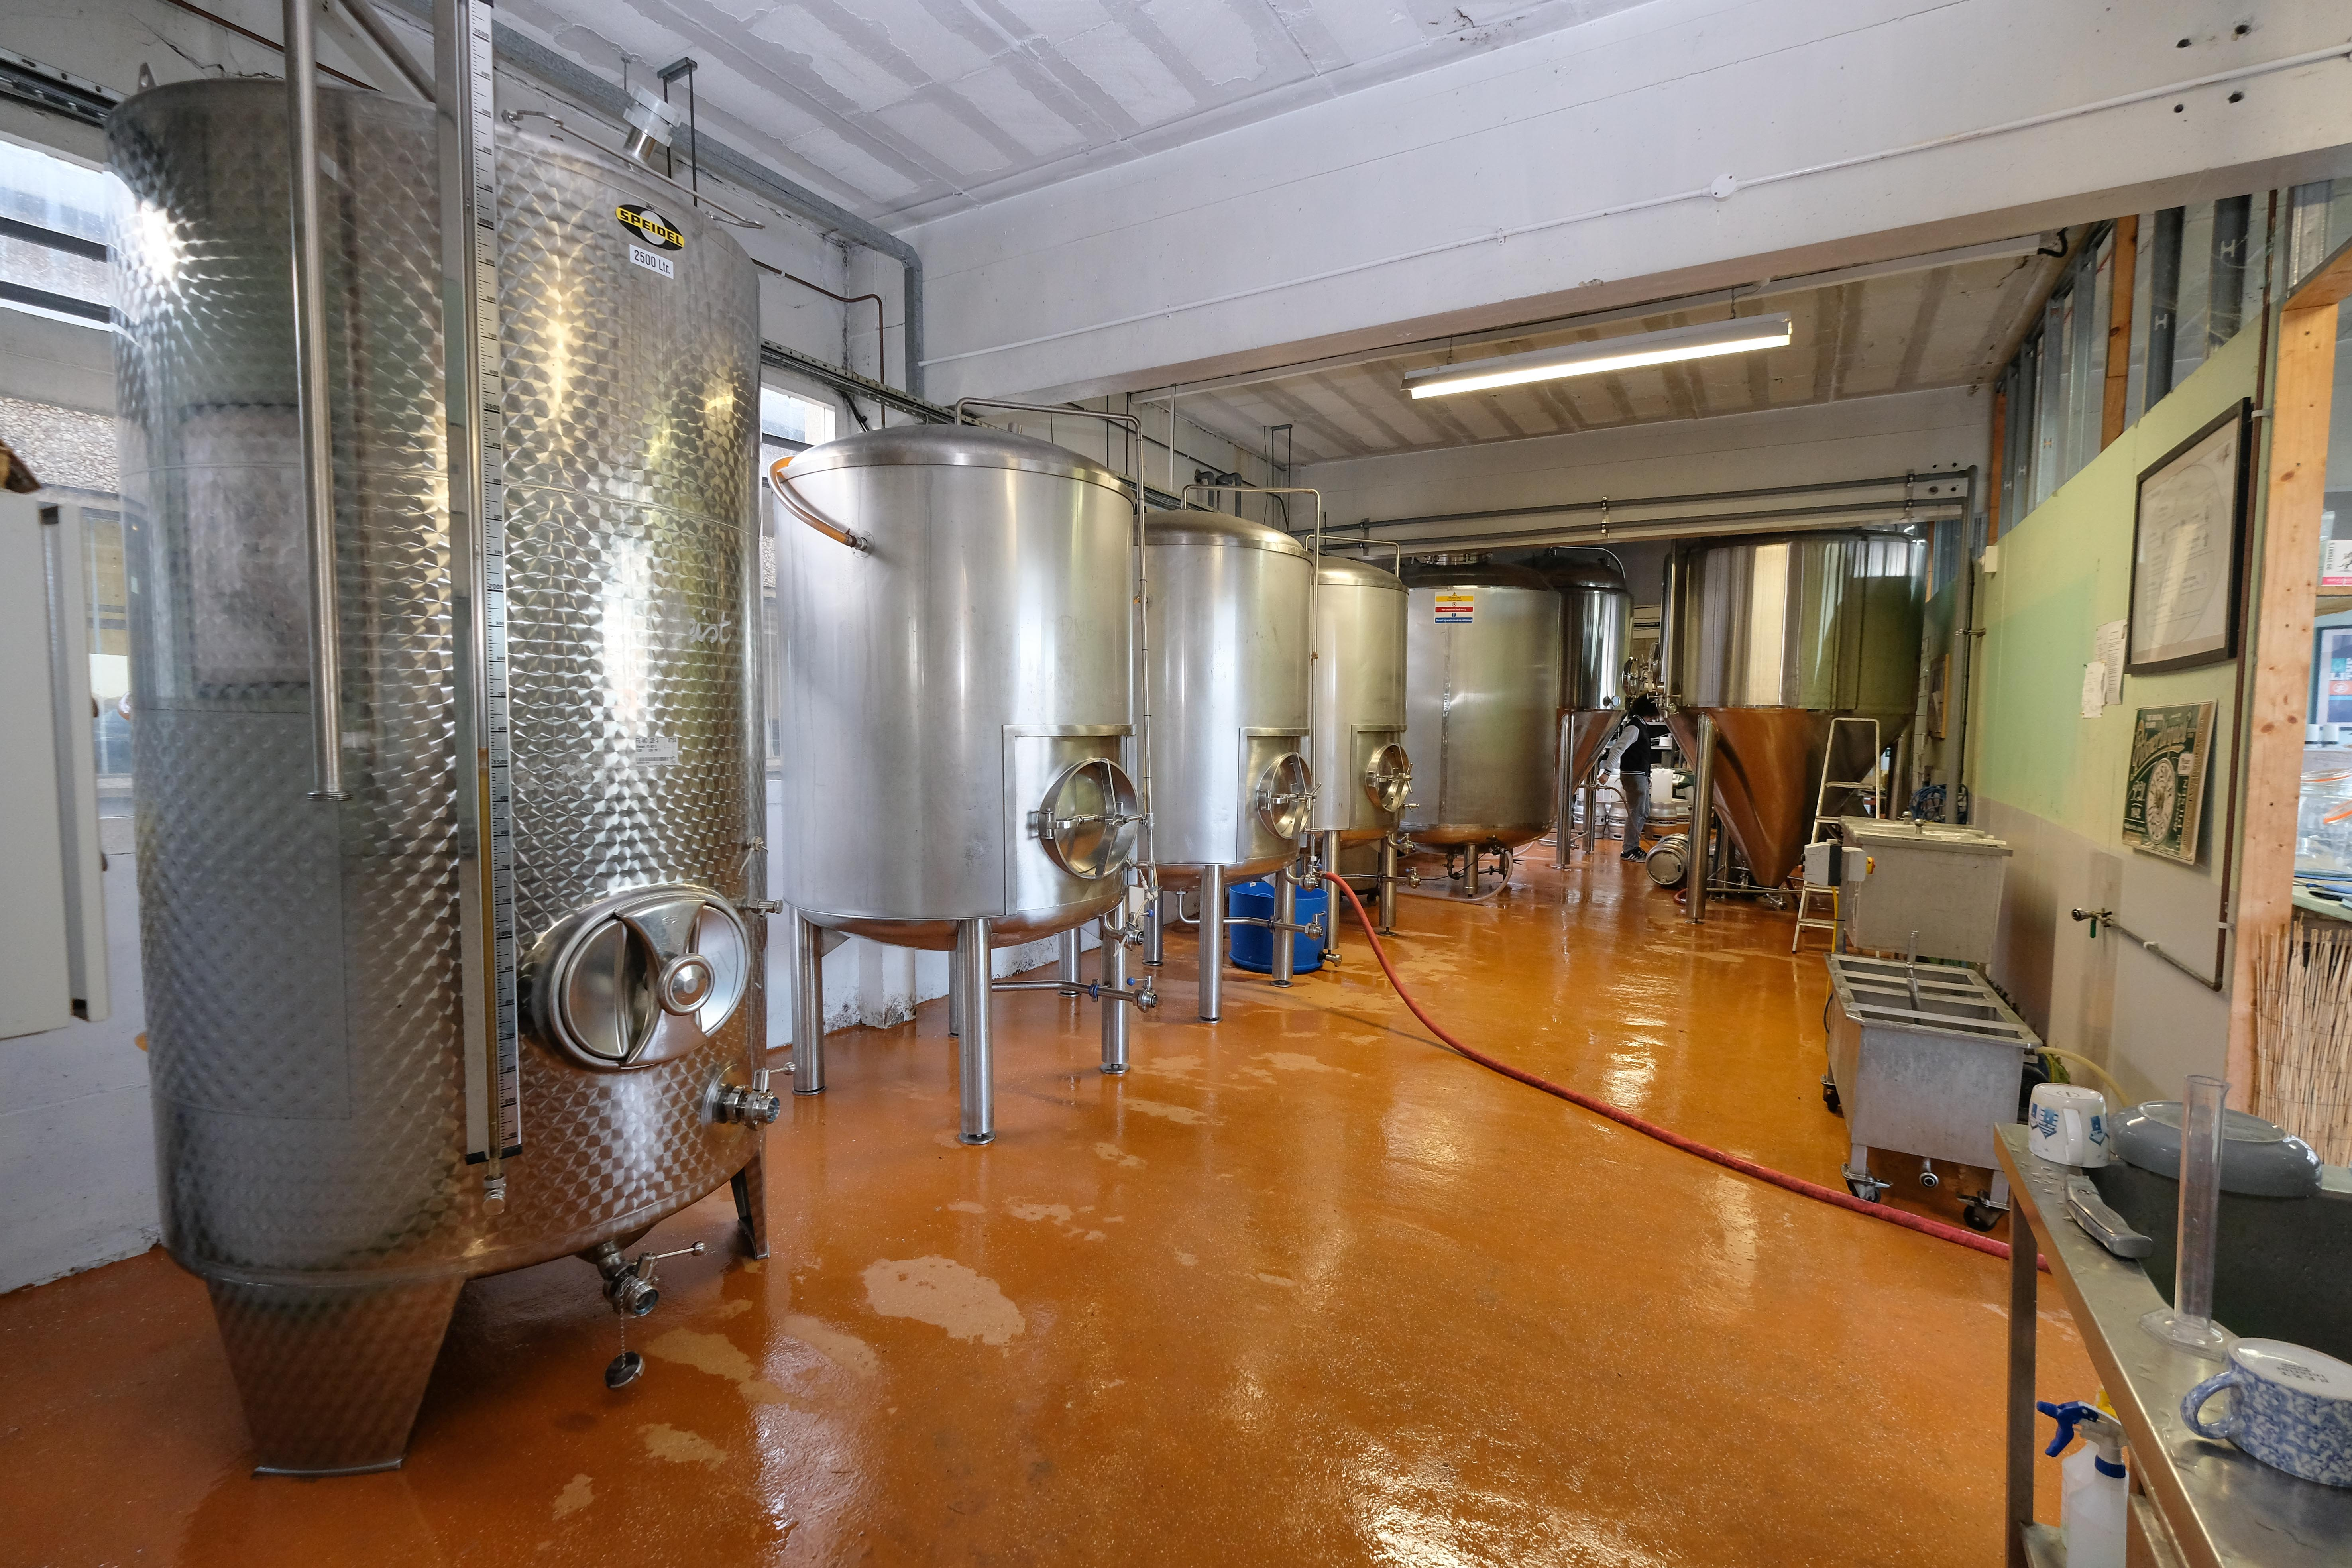 The Crafty Brewing Co. revitalises brewing in Guildford